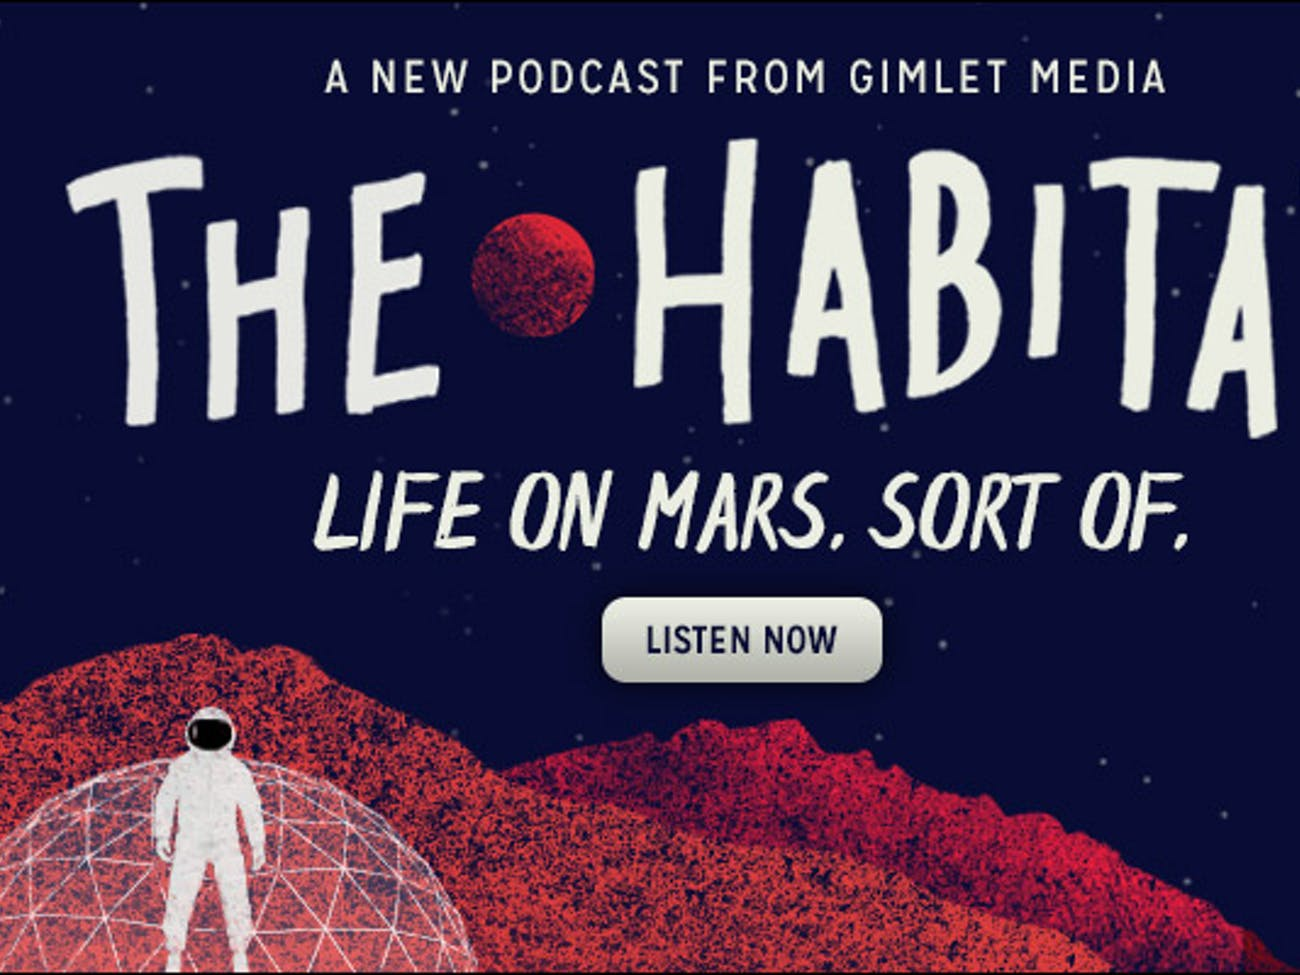 Best Gimlet Podcasts: The Must-Listens That Lured in a $200 Million